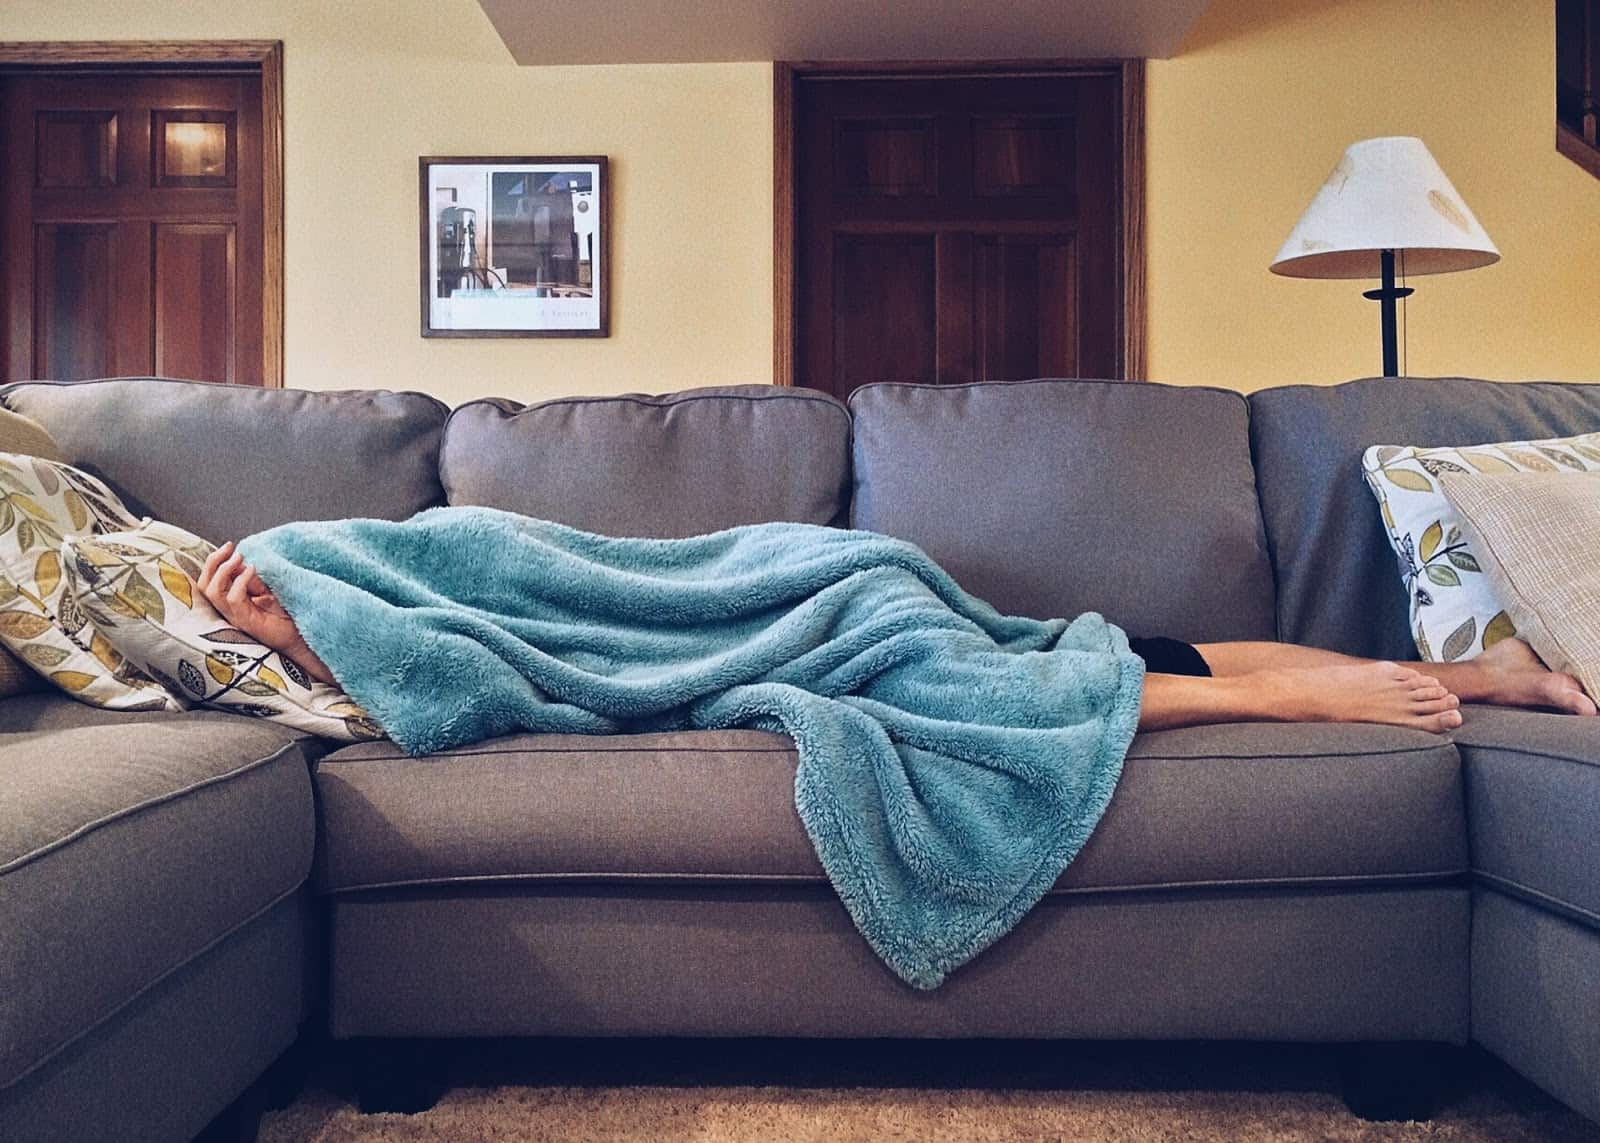 person sleeping on a couch